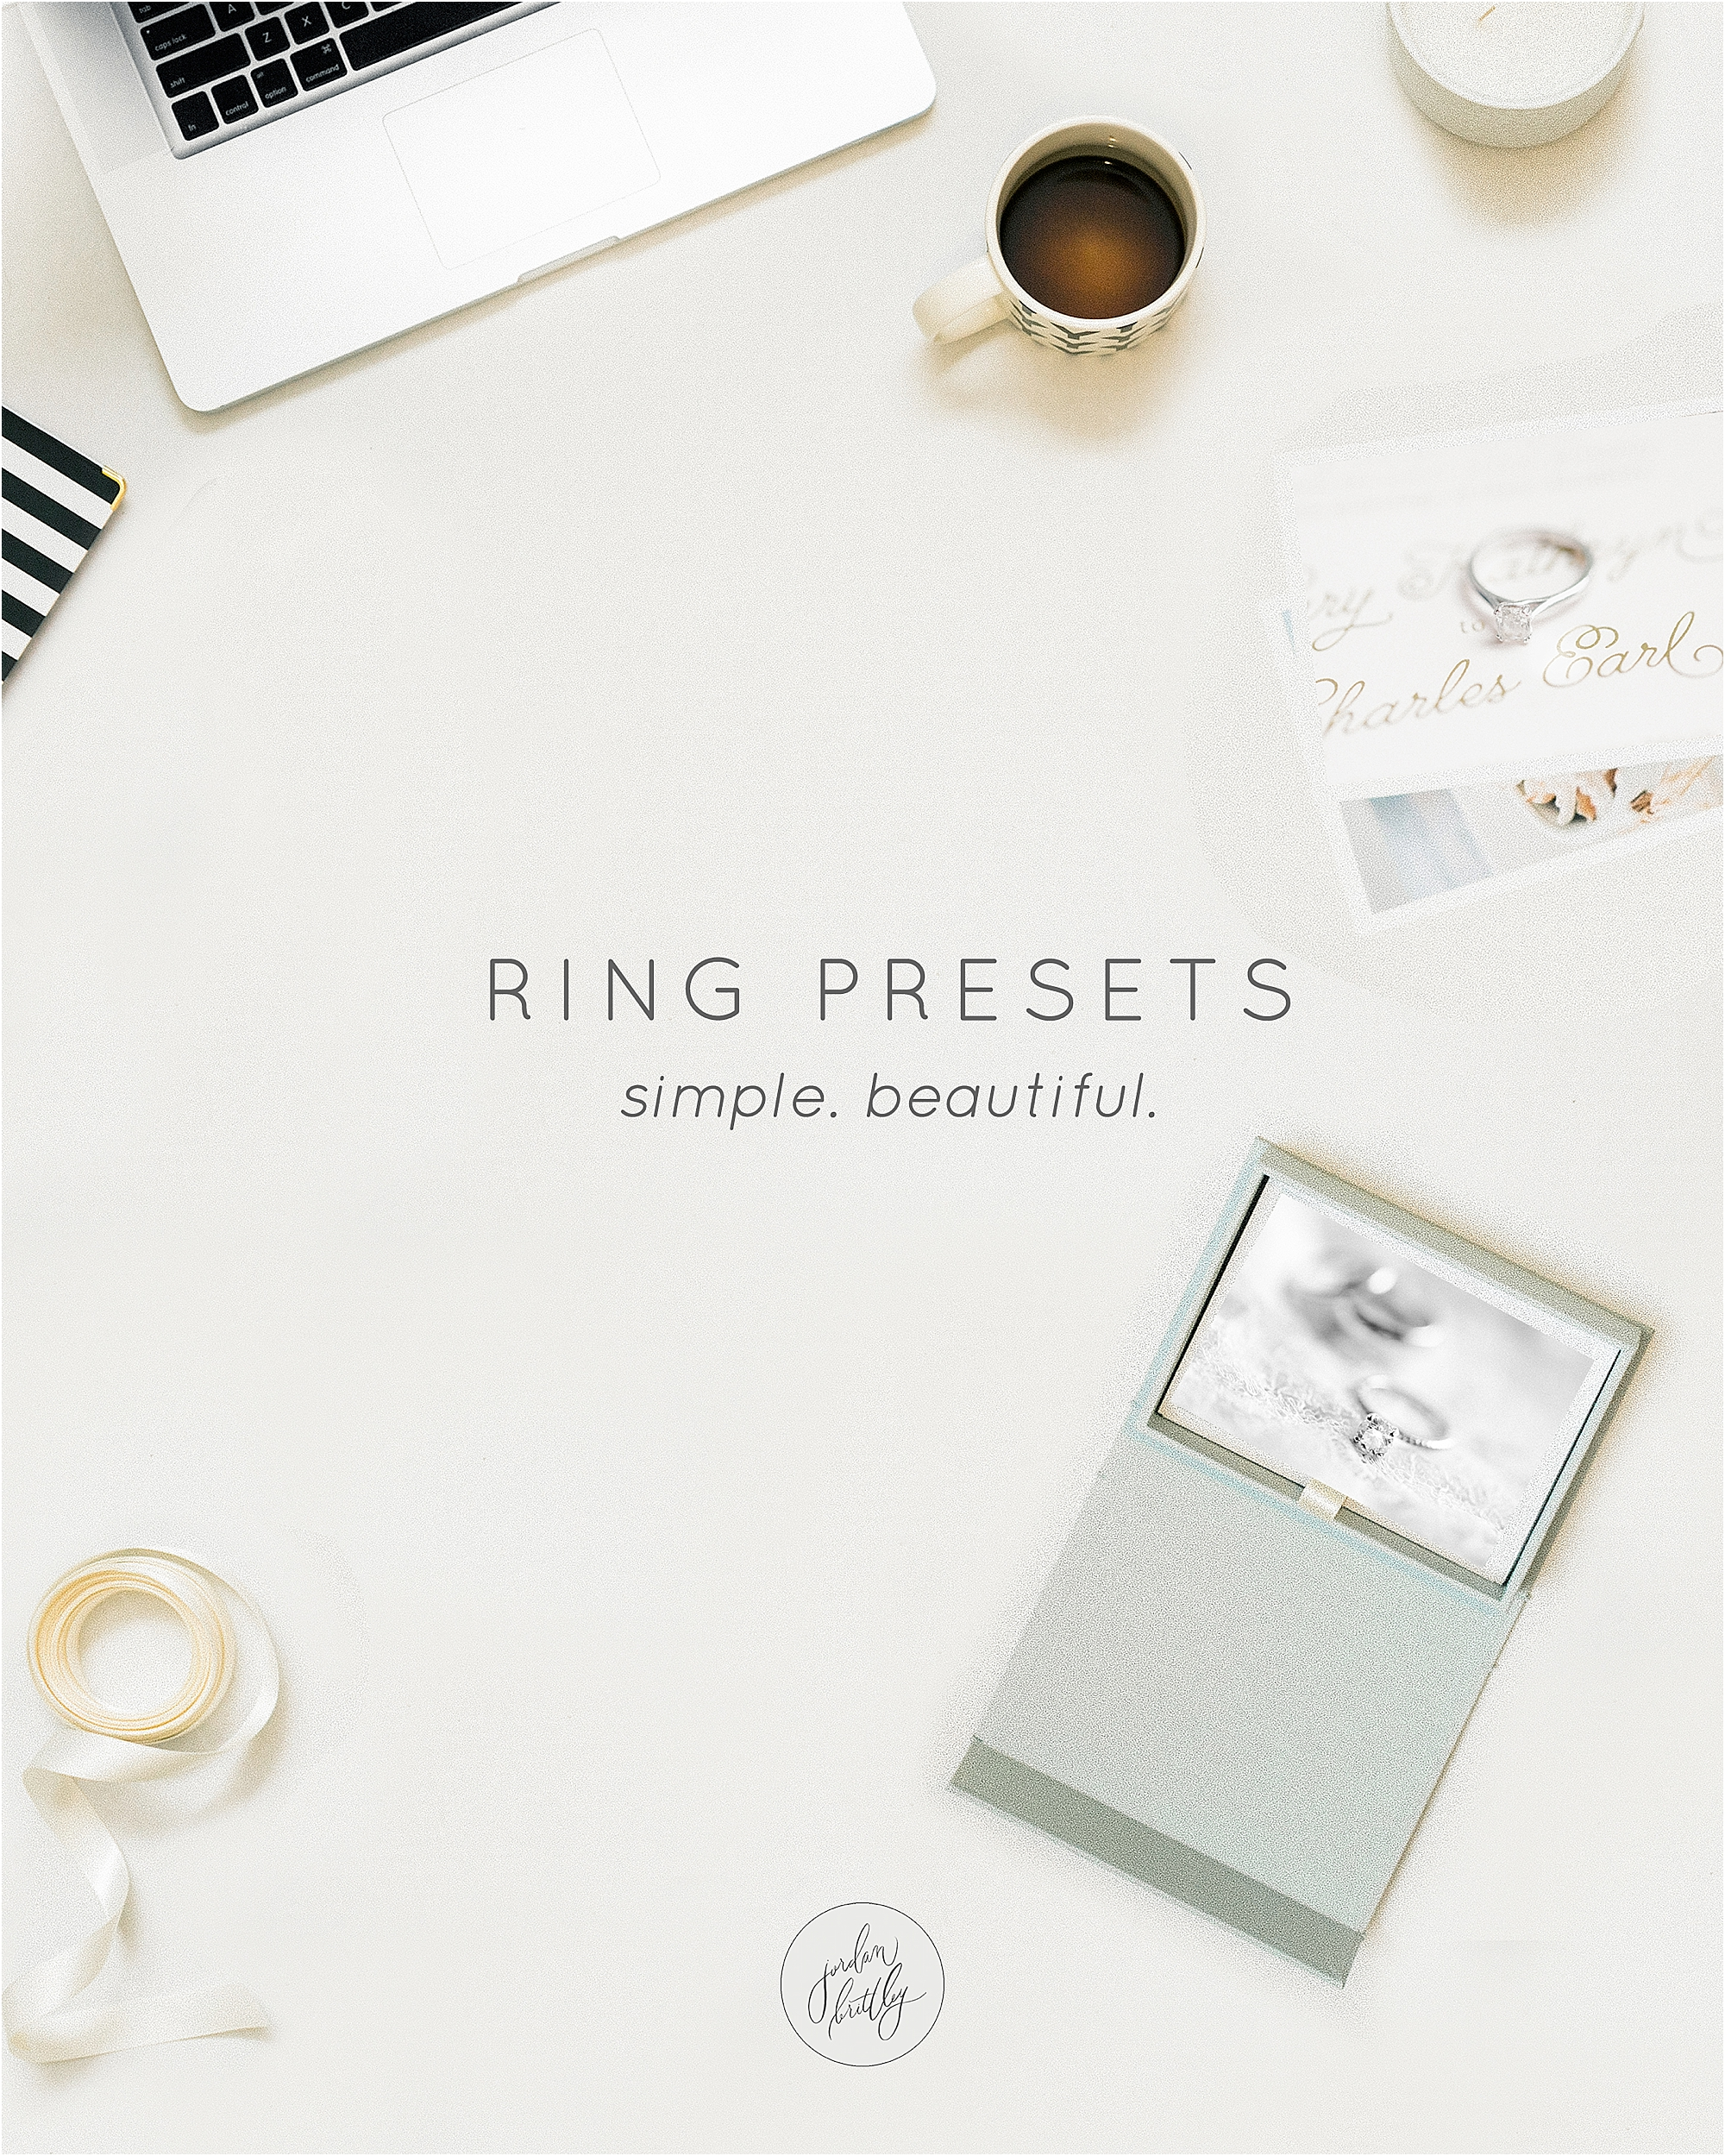 Pretty Ring Presets for a Beautiful Brand - The Jordan Brittley Blog